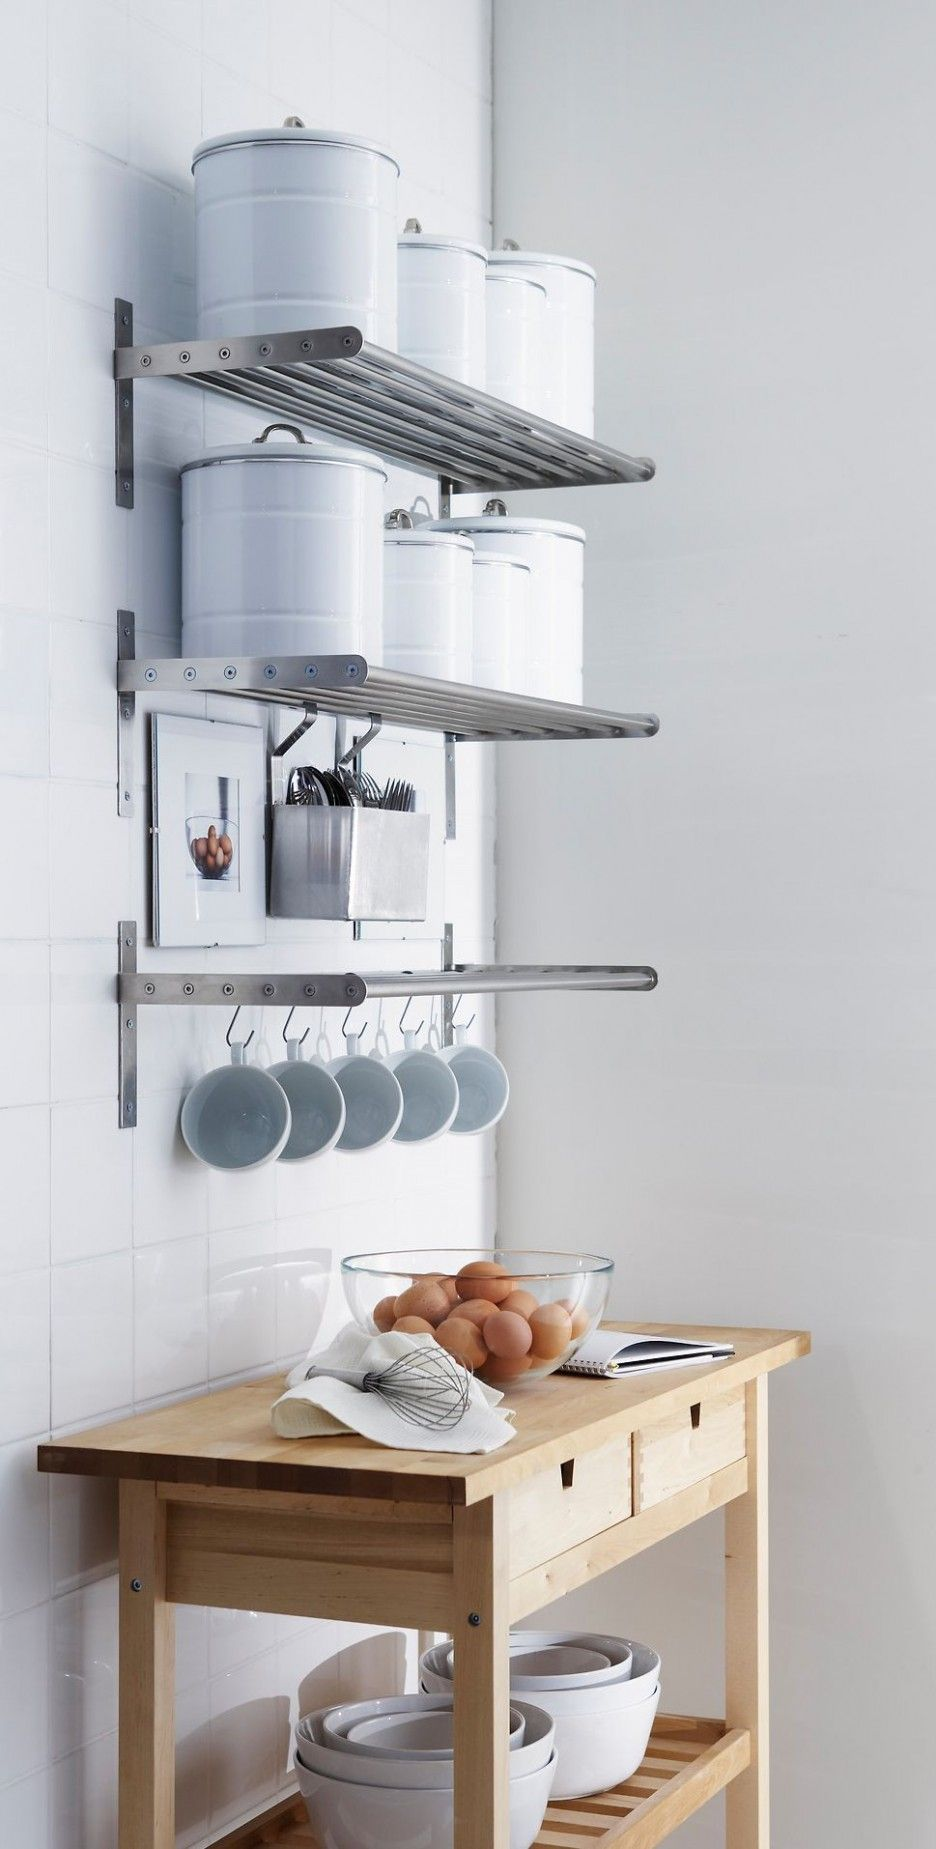 Picture of Level Shape Wall Mounted Shelves Stainless